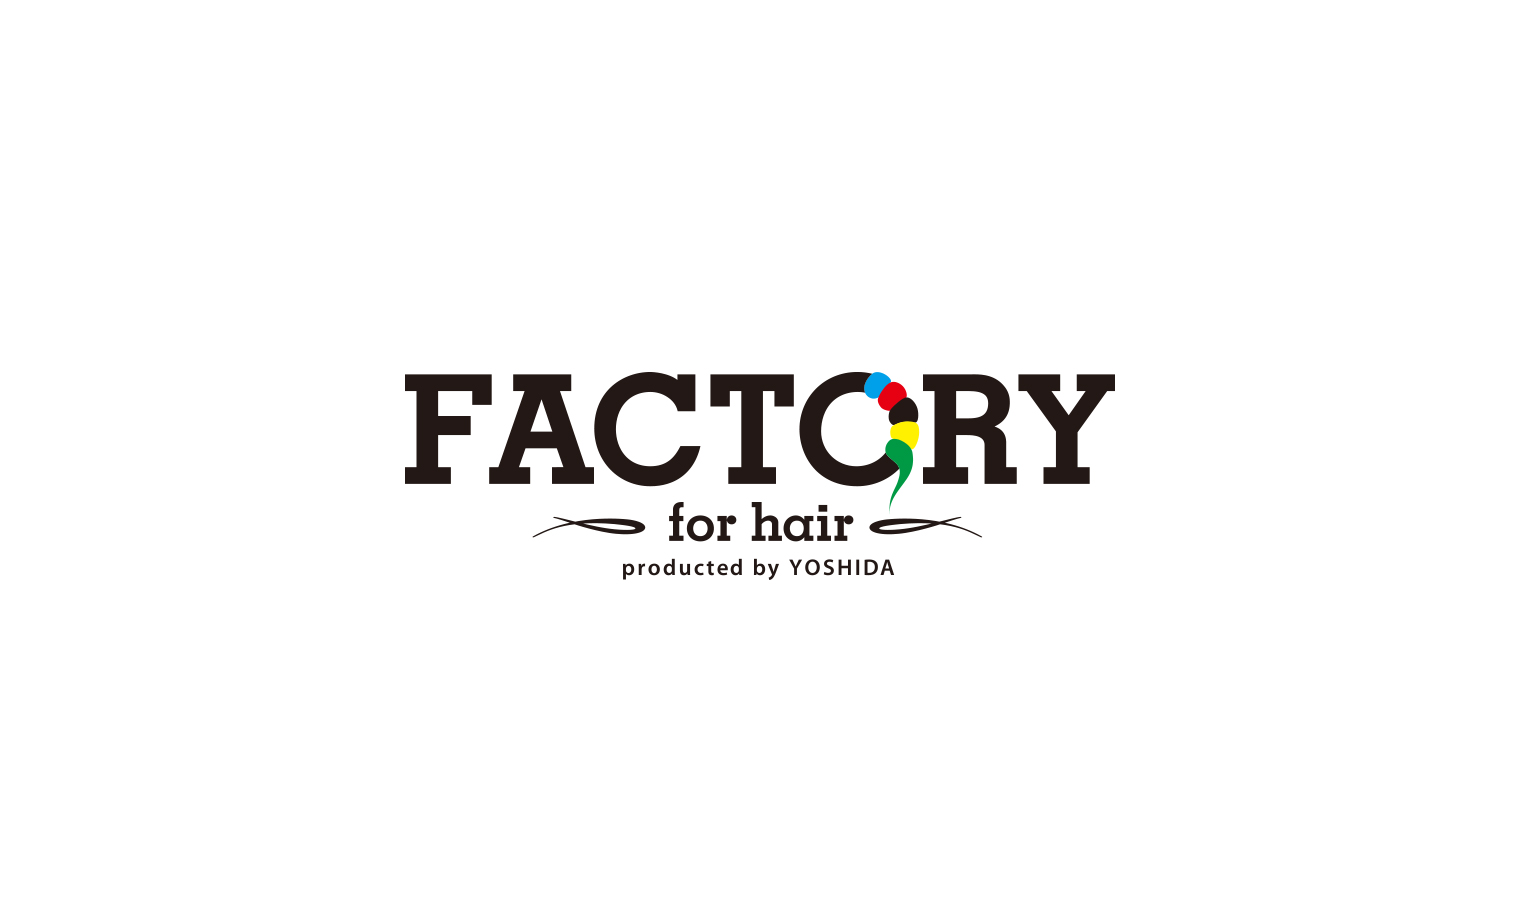 FACTORY for hair